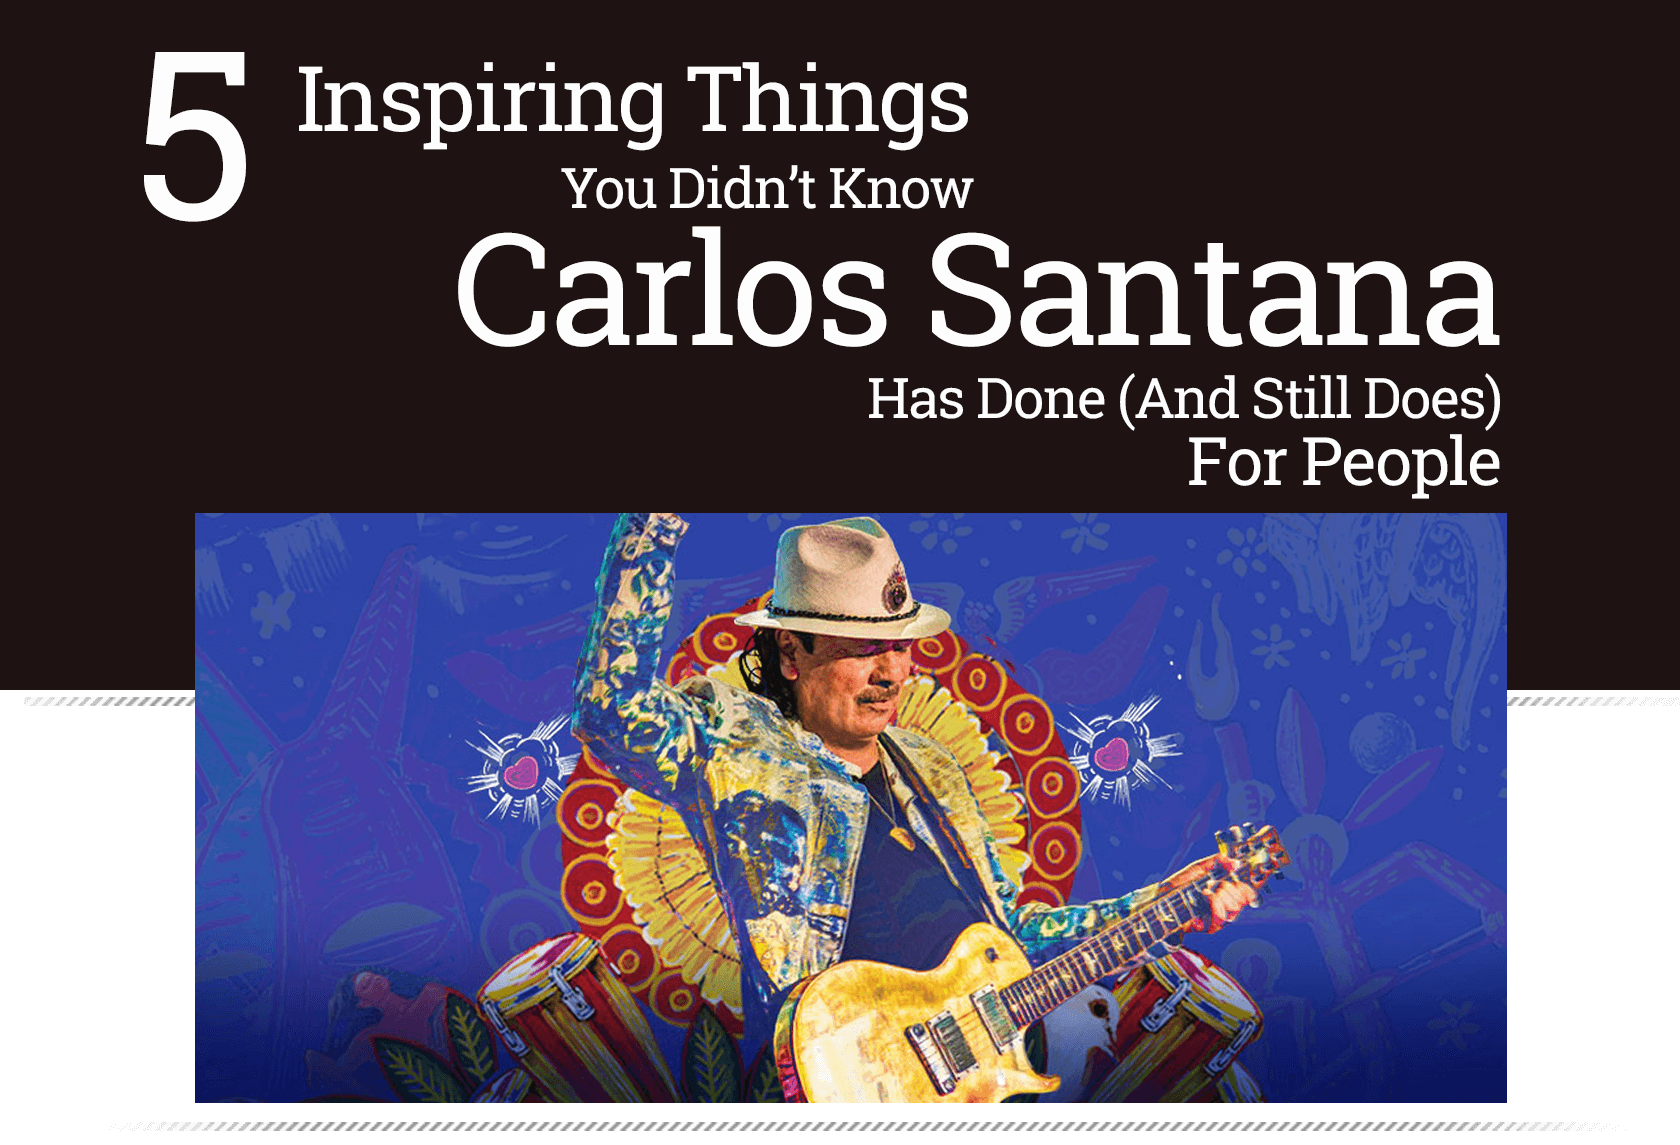 5 Inspiring Things You Didn't Know Carlos Santana Has Done (And Still Does For People)